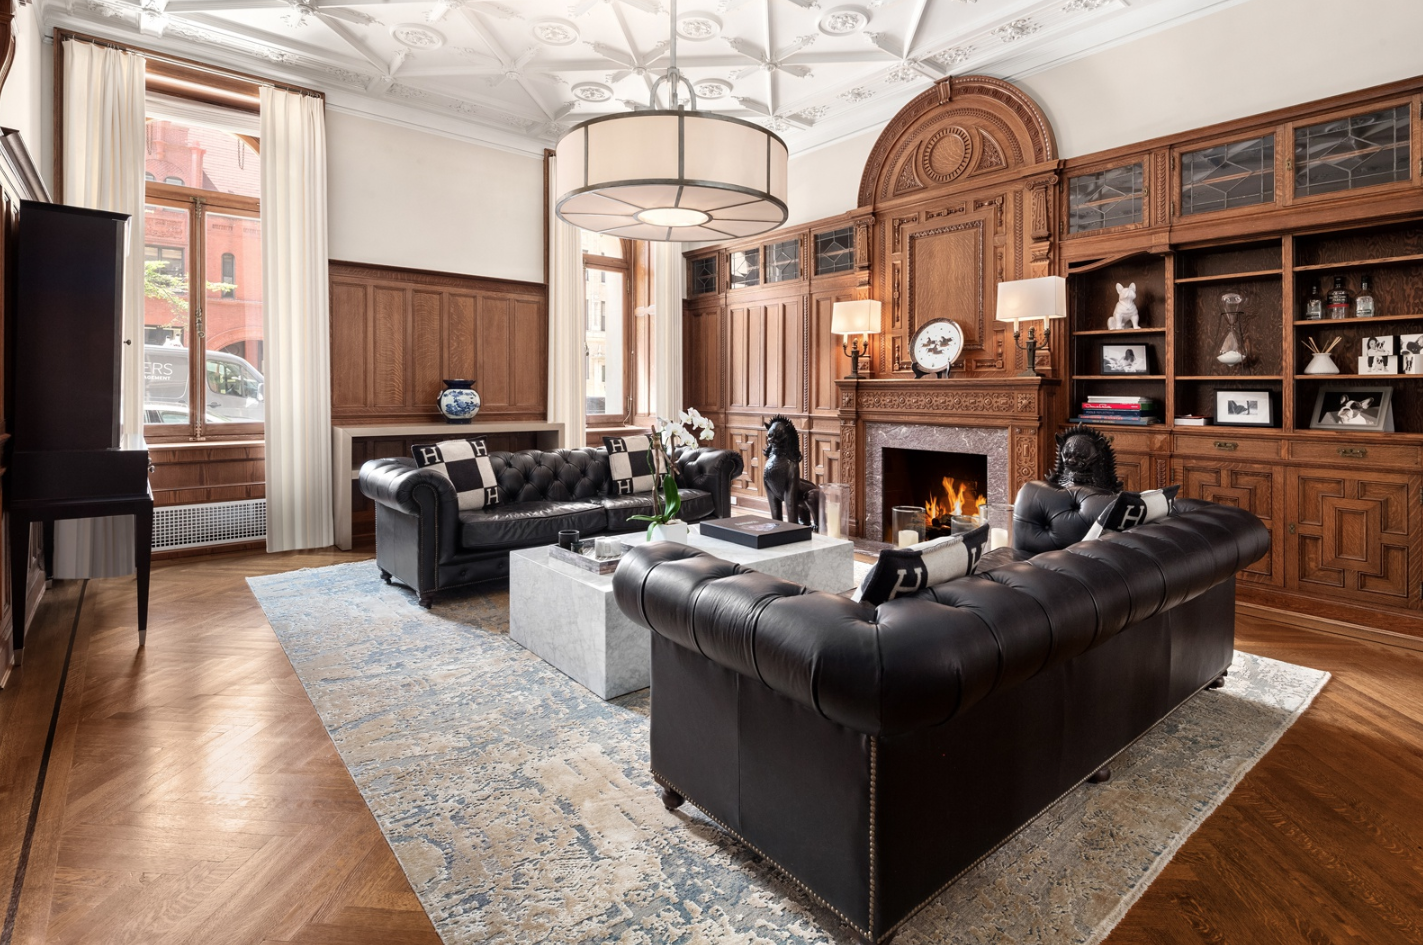 390 WEST END AVENUE, 1F/2F - $9,995,000 // 4 Beds // 3.5 Baths // 4,200 SQFTA mint-condition duplex condo nestled a block away from Riverside Park in the landmarked Apthorp building. Features of this apartment include a Crestron Home Automation System, a host of restored original details that include elegant herringbone hardwood and terrazzo-tiled floors, tall arched windows with eastern and western exposure and much more!